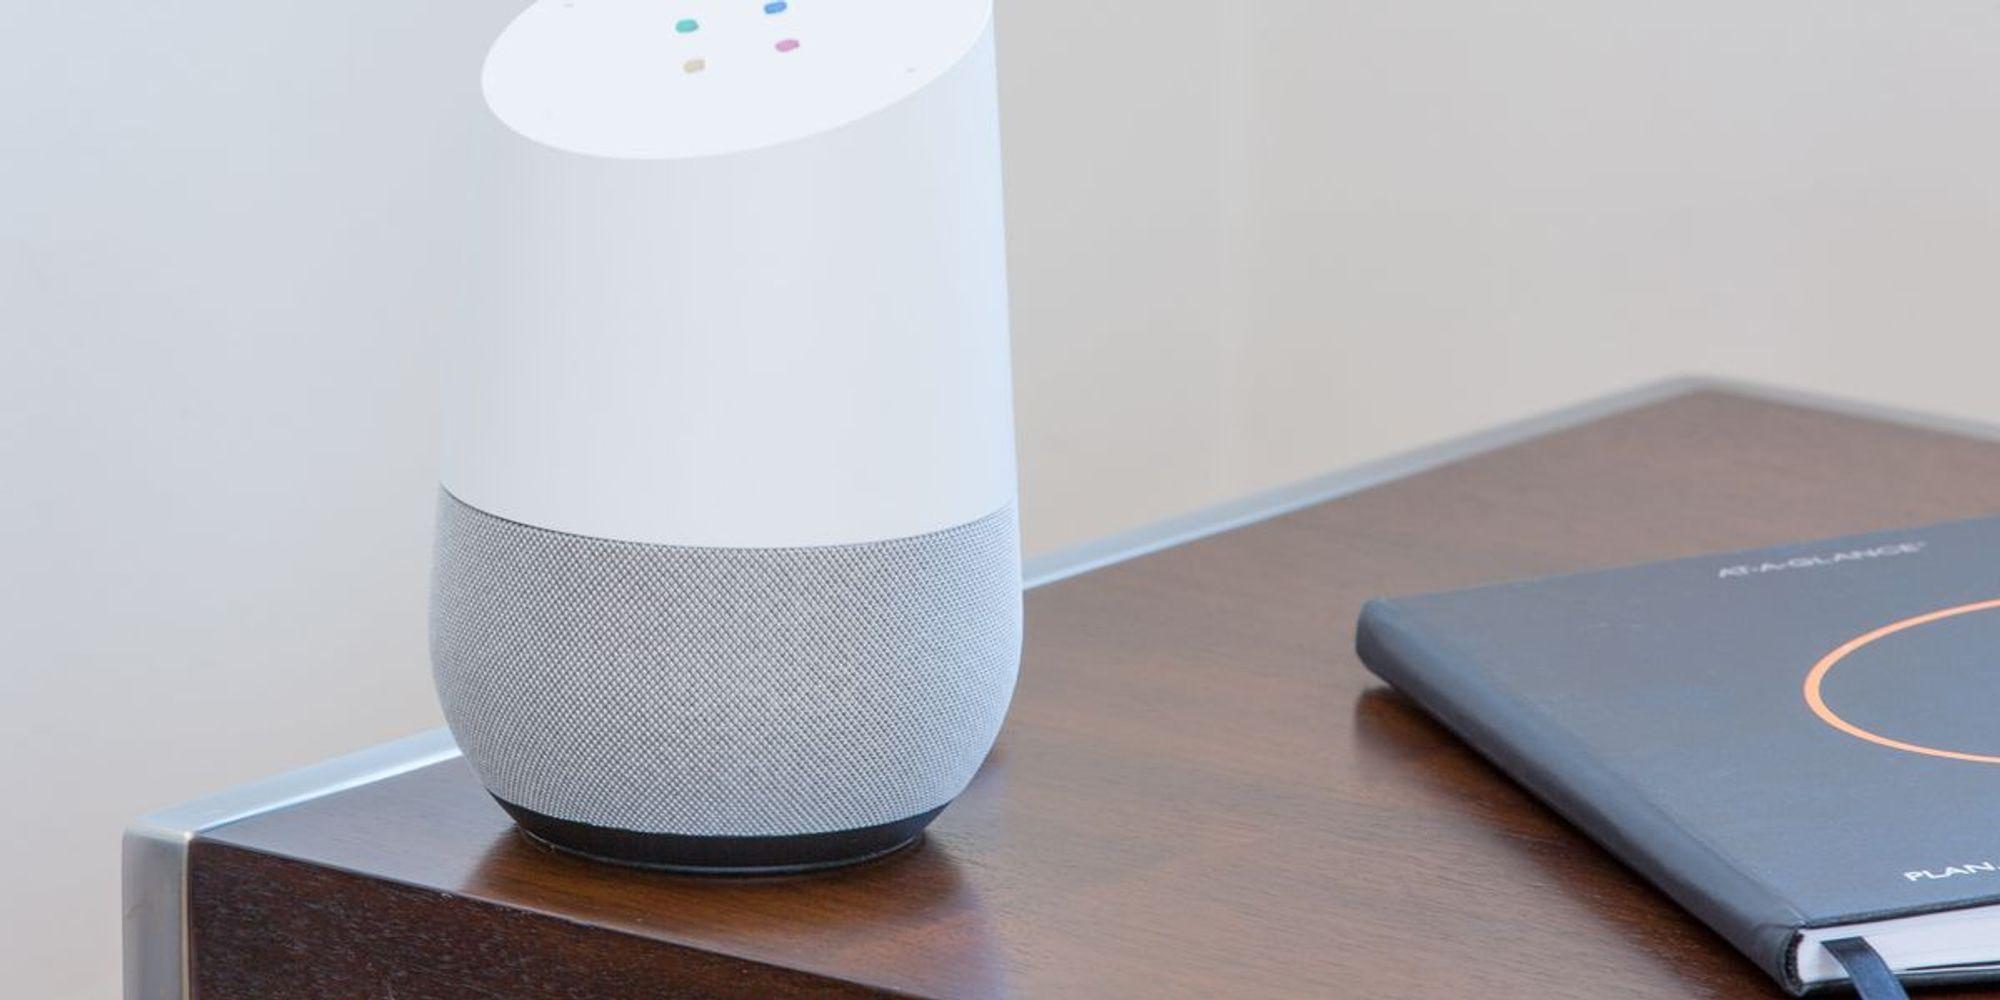 Google S Secret Home Security Superpower Your Smart Speaker With Its Always On Mics Google Speakers Are Listening T Home Automation Smart Home Home Security